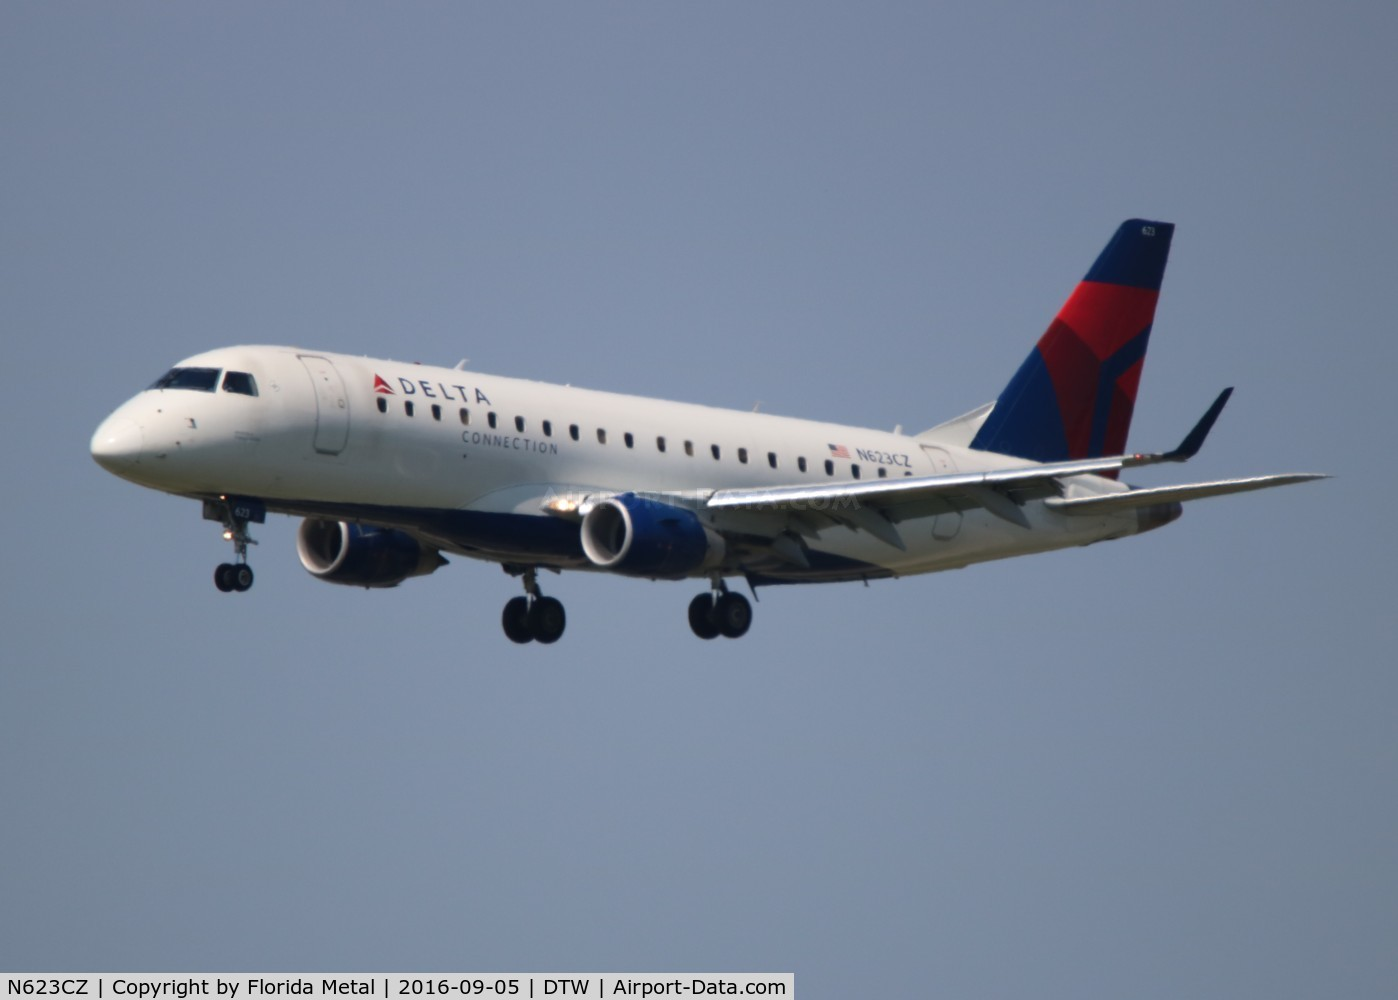 N623CZ, 2008 Embraer 175LR (ERJ-170-200LR) C/N 17000221, Delta Connection